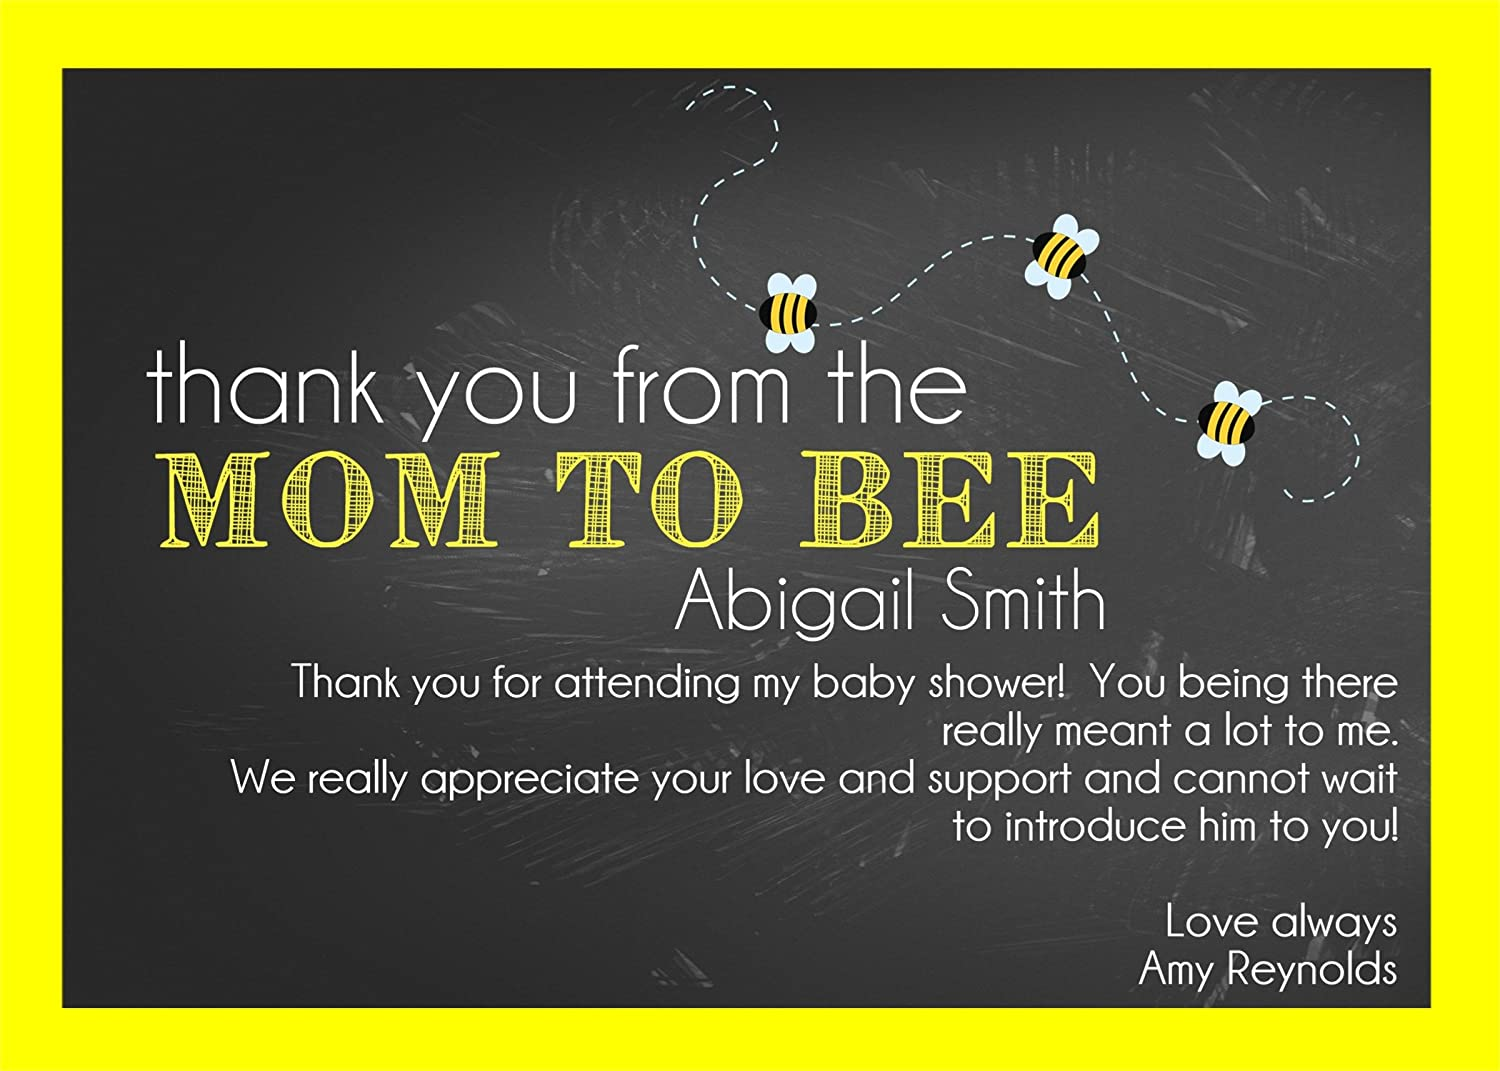 Personalized Bumble Bee Baby Shower Thank You Cards